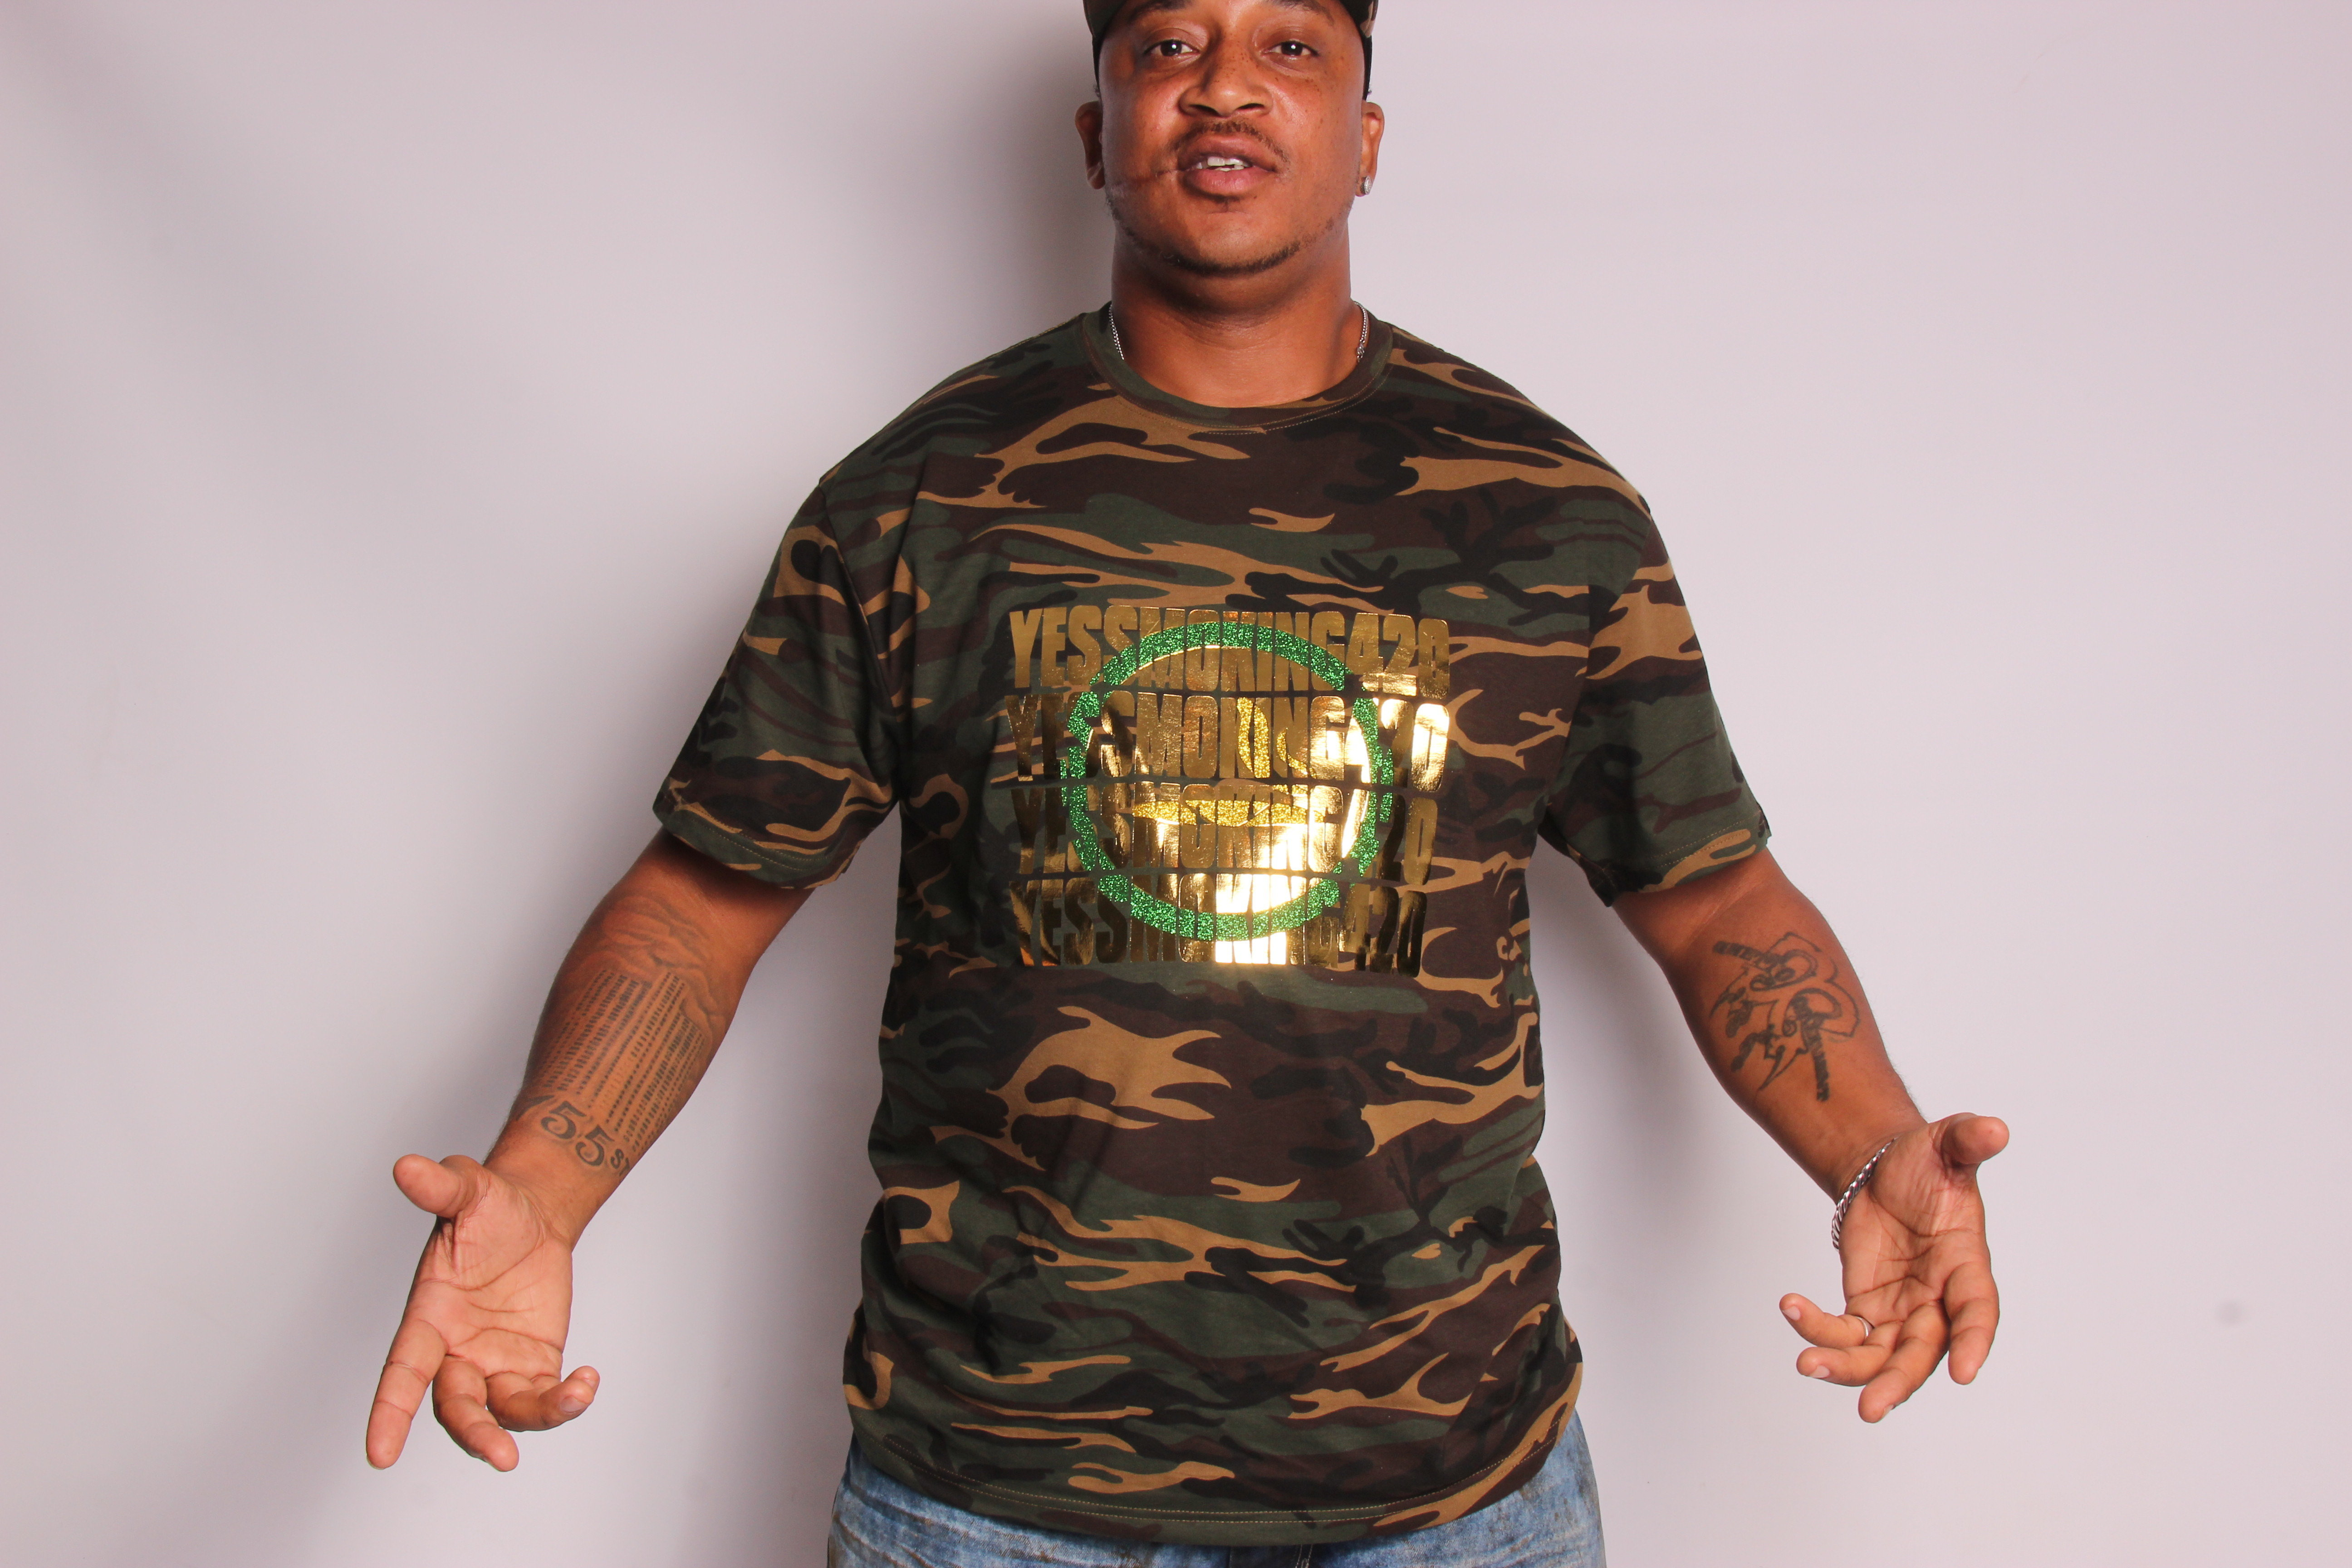 CAMOFLAUGE YES SMOKING 420 KNOCKOUT T-SHIRT